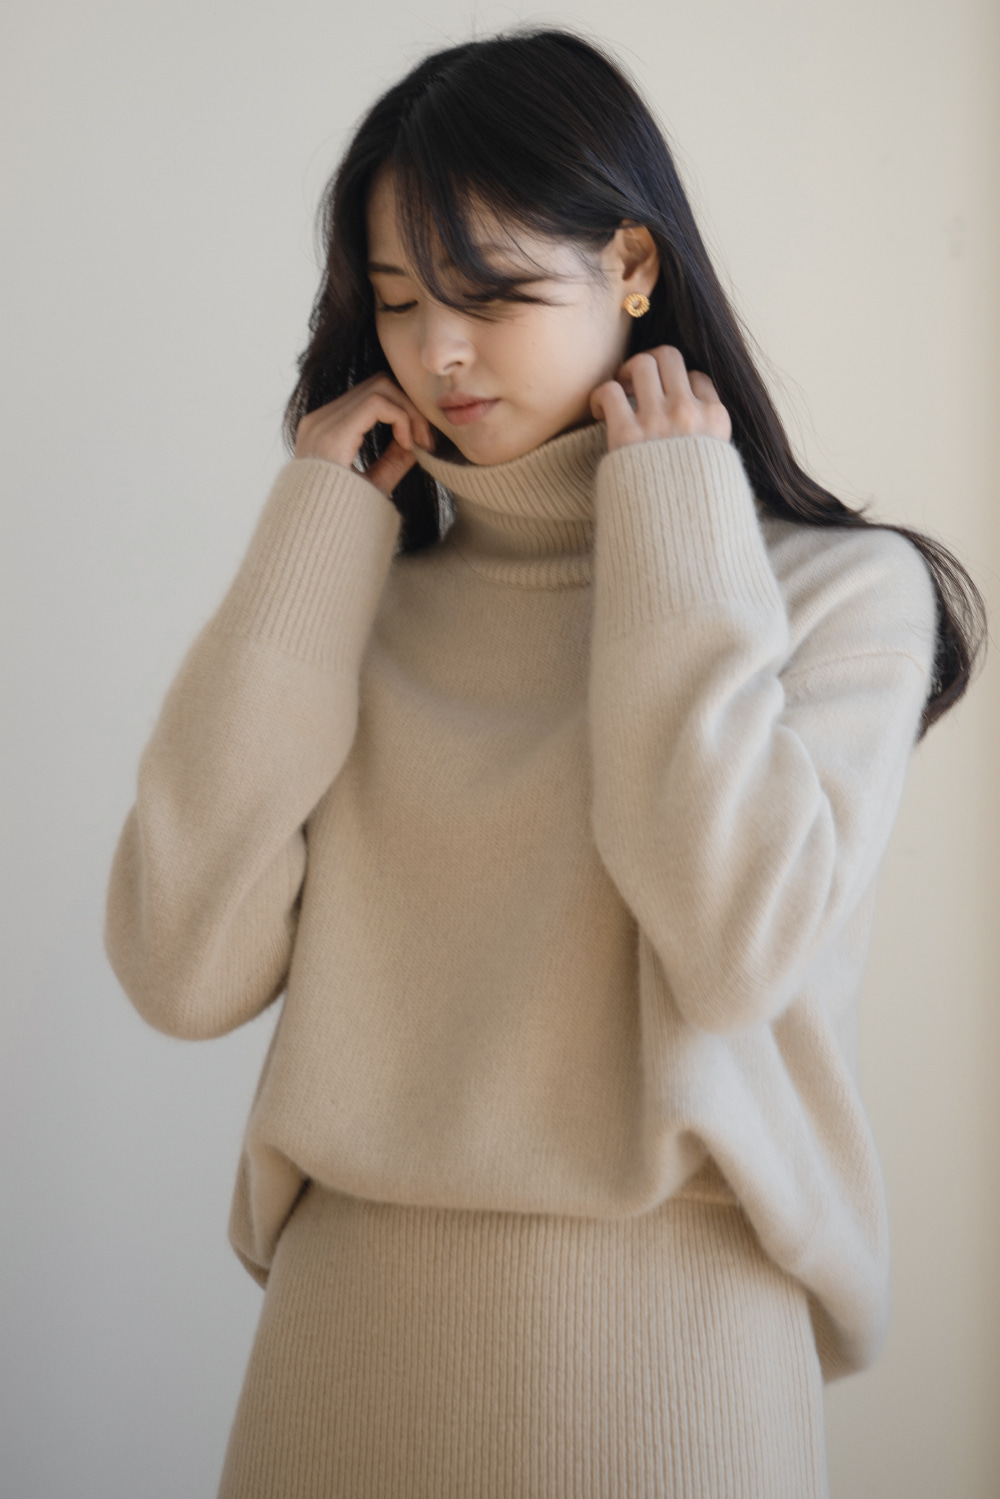 8504_Raccoon turtleneck knit  [ New Season / 10% DC ] 26일 PM 6 마감 / [ 주문일로부터 2주소요 ]